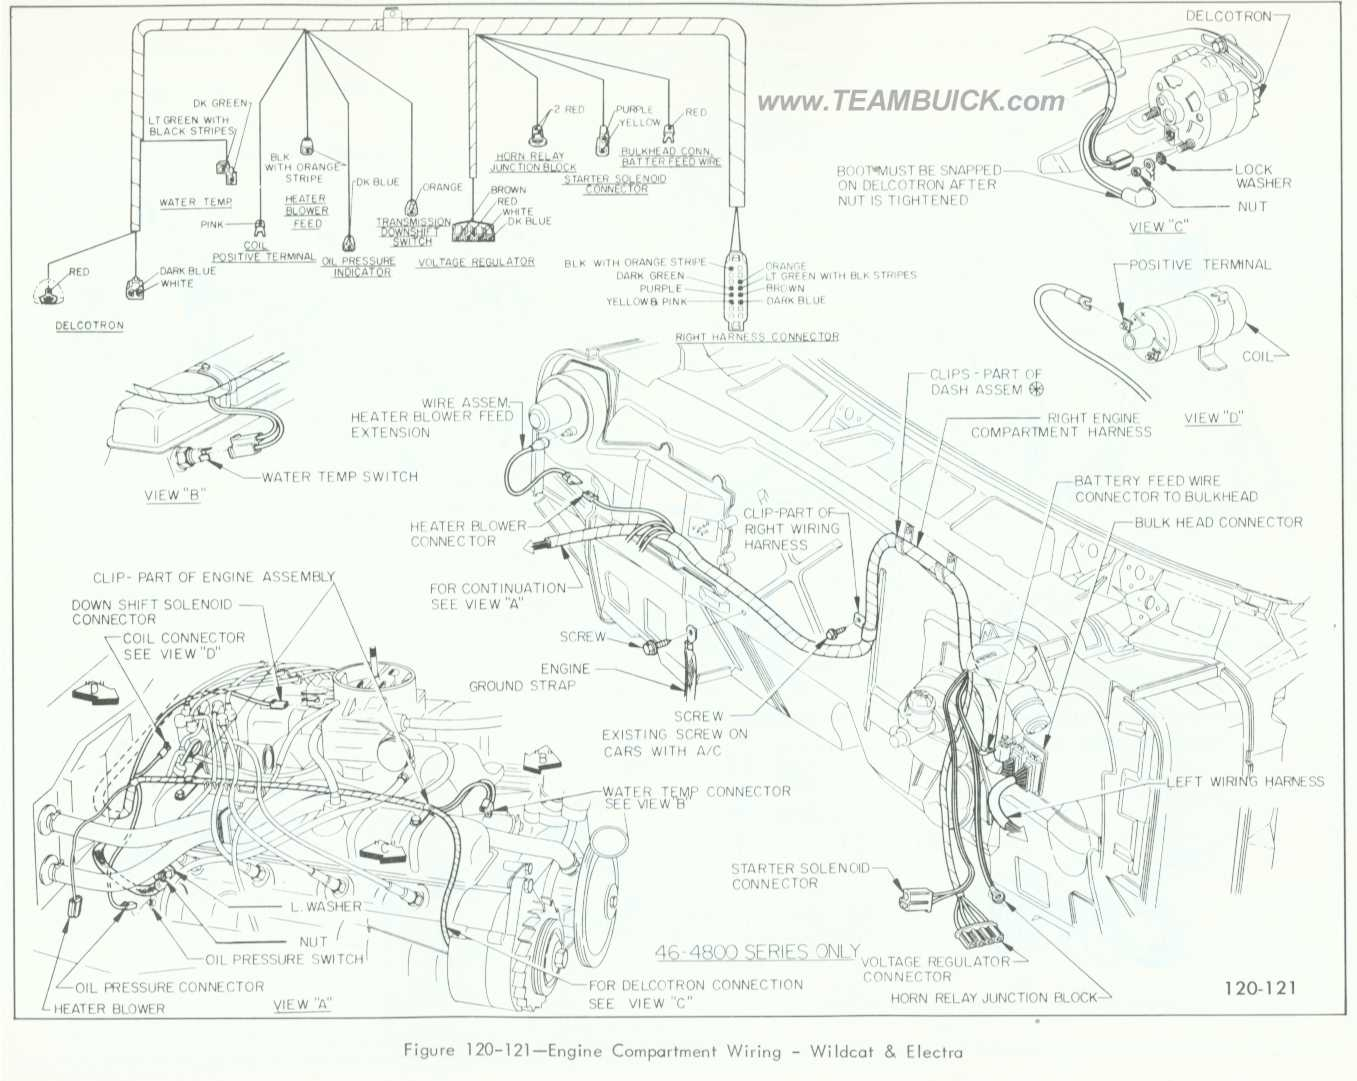 Buick Wildcat Electra Engine Compartment Wiring